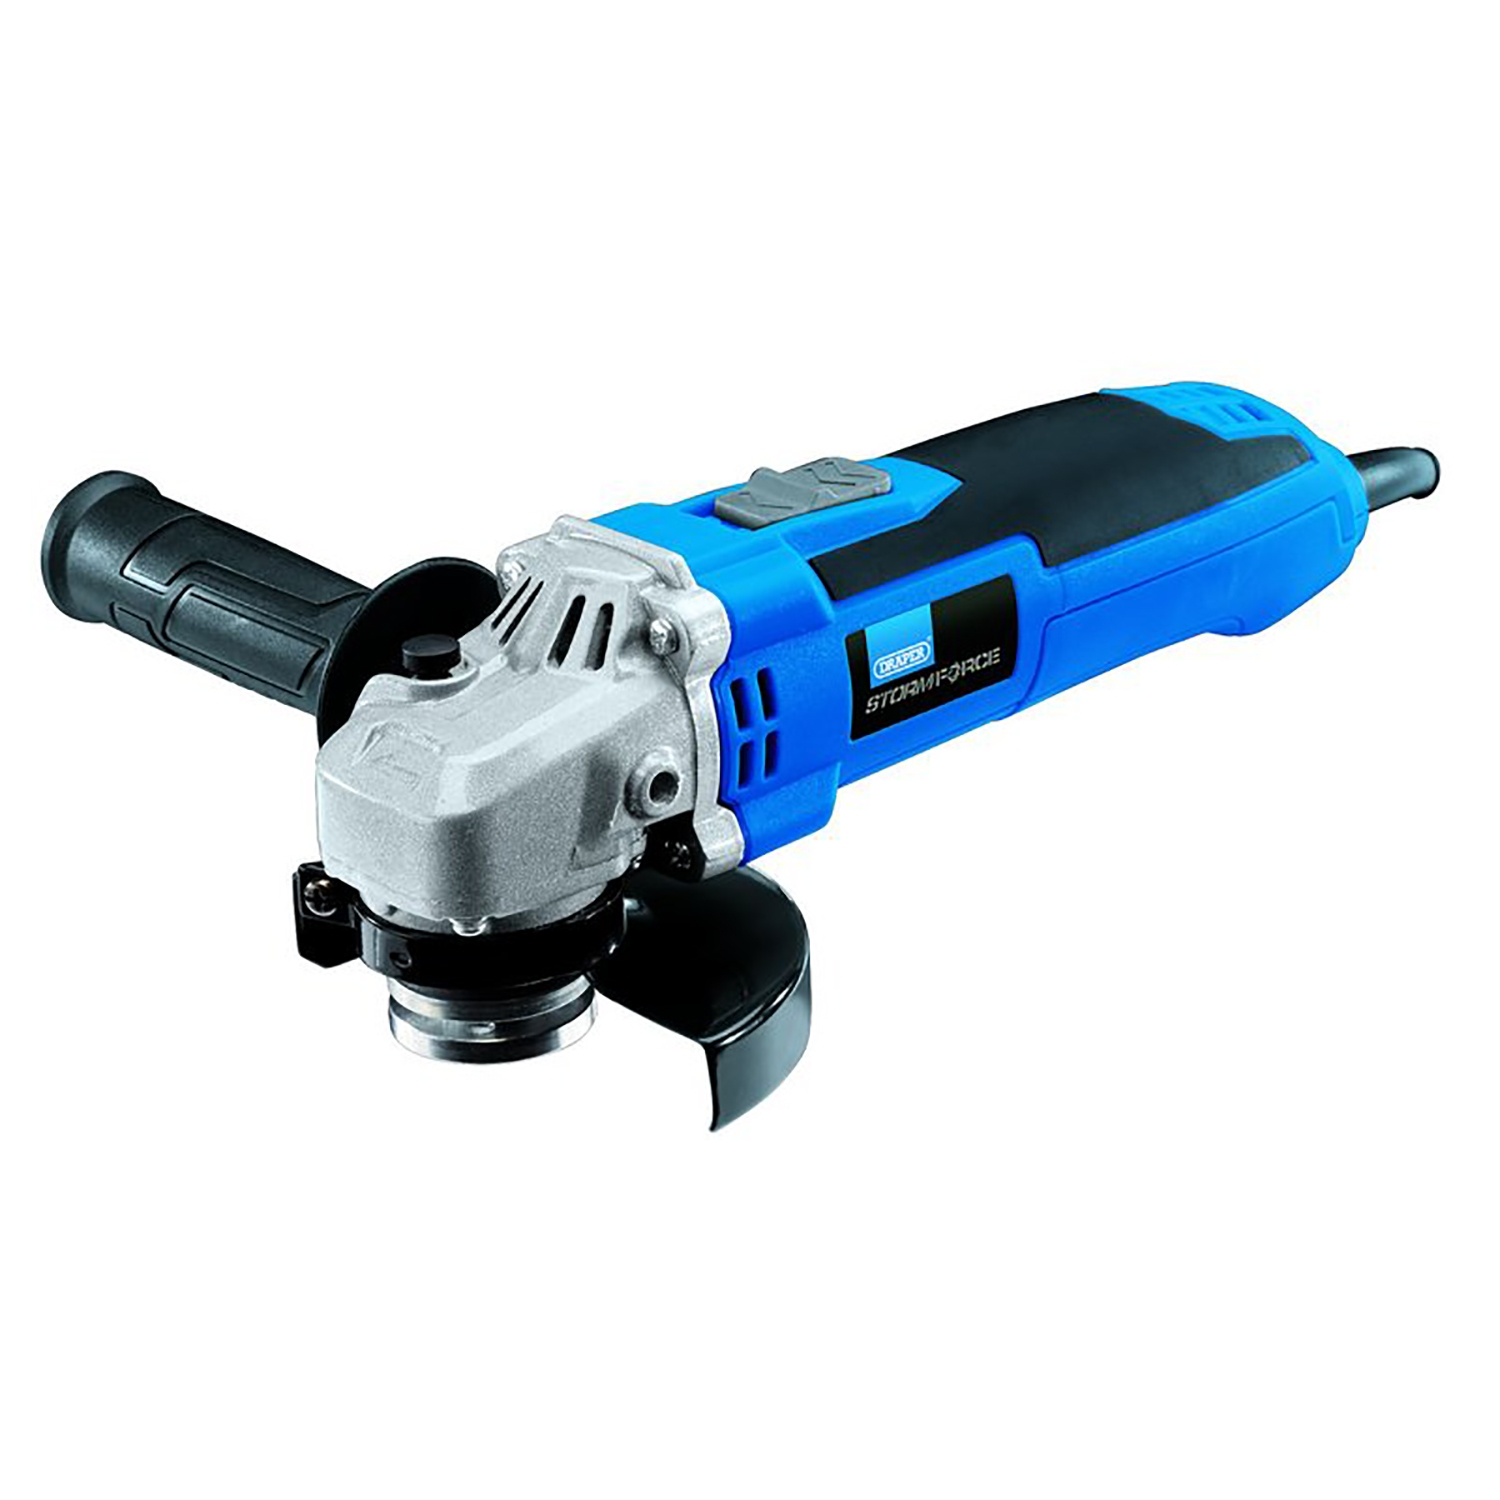 Image of Draper Storm Force Angle Grinder 115mm 650w